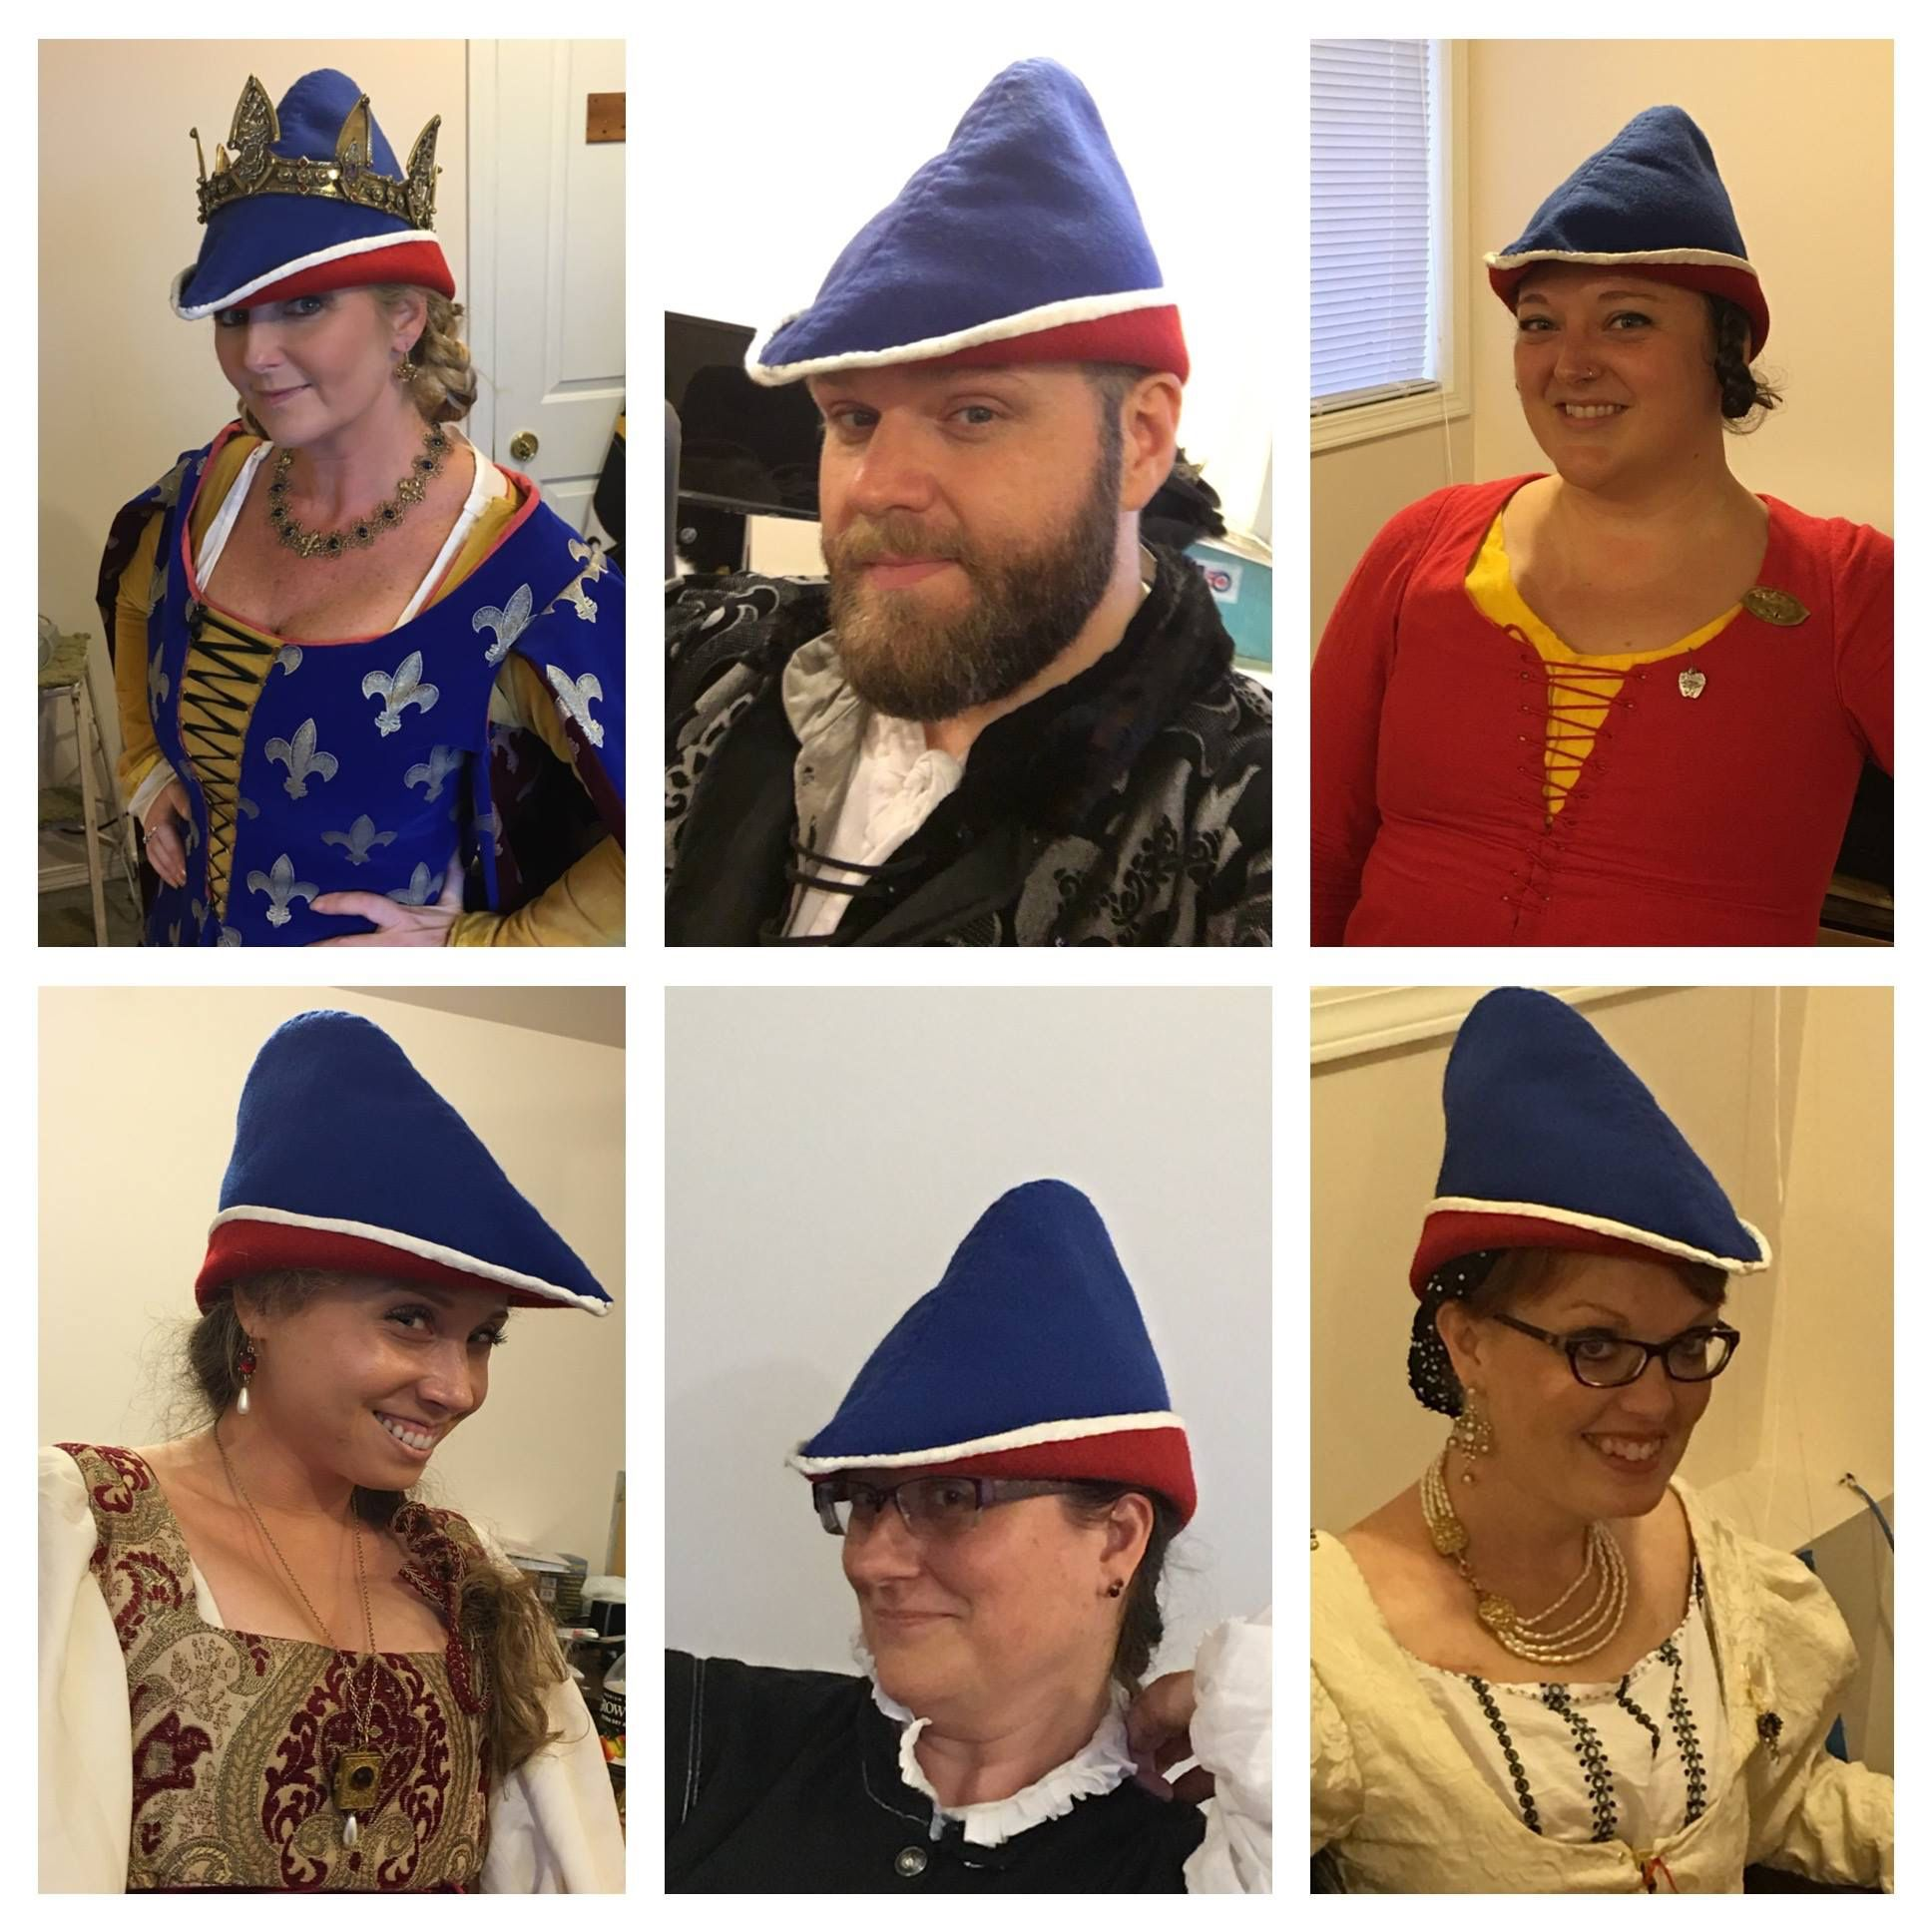 040e2e5e78ecd Bycocket - 14th and 15th century hat that looks good on everyone form crown  to commoner.